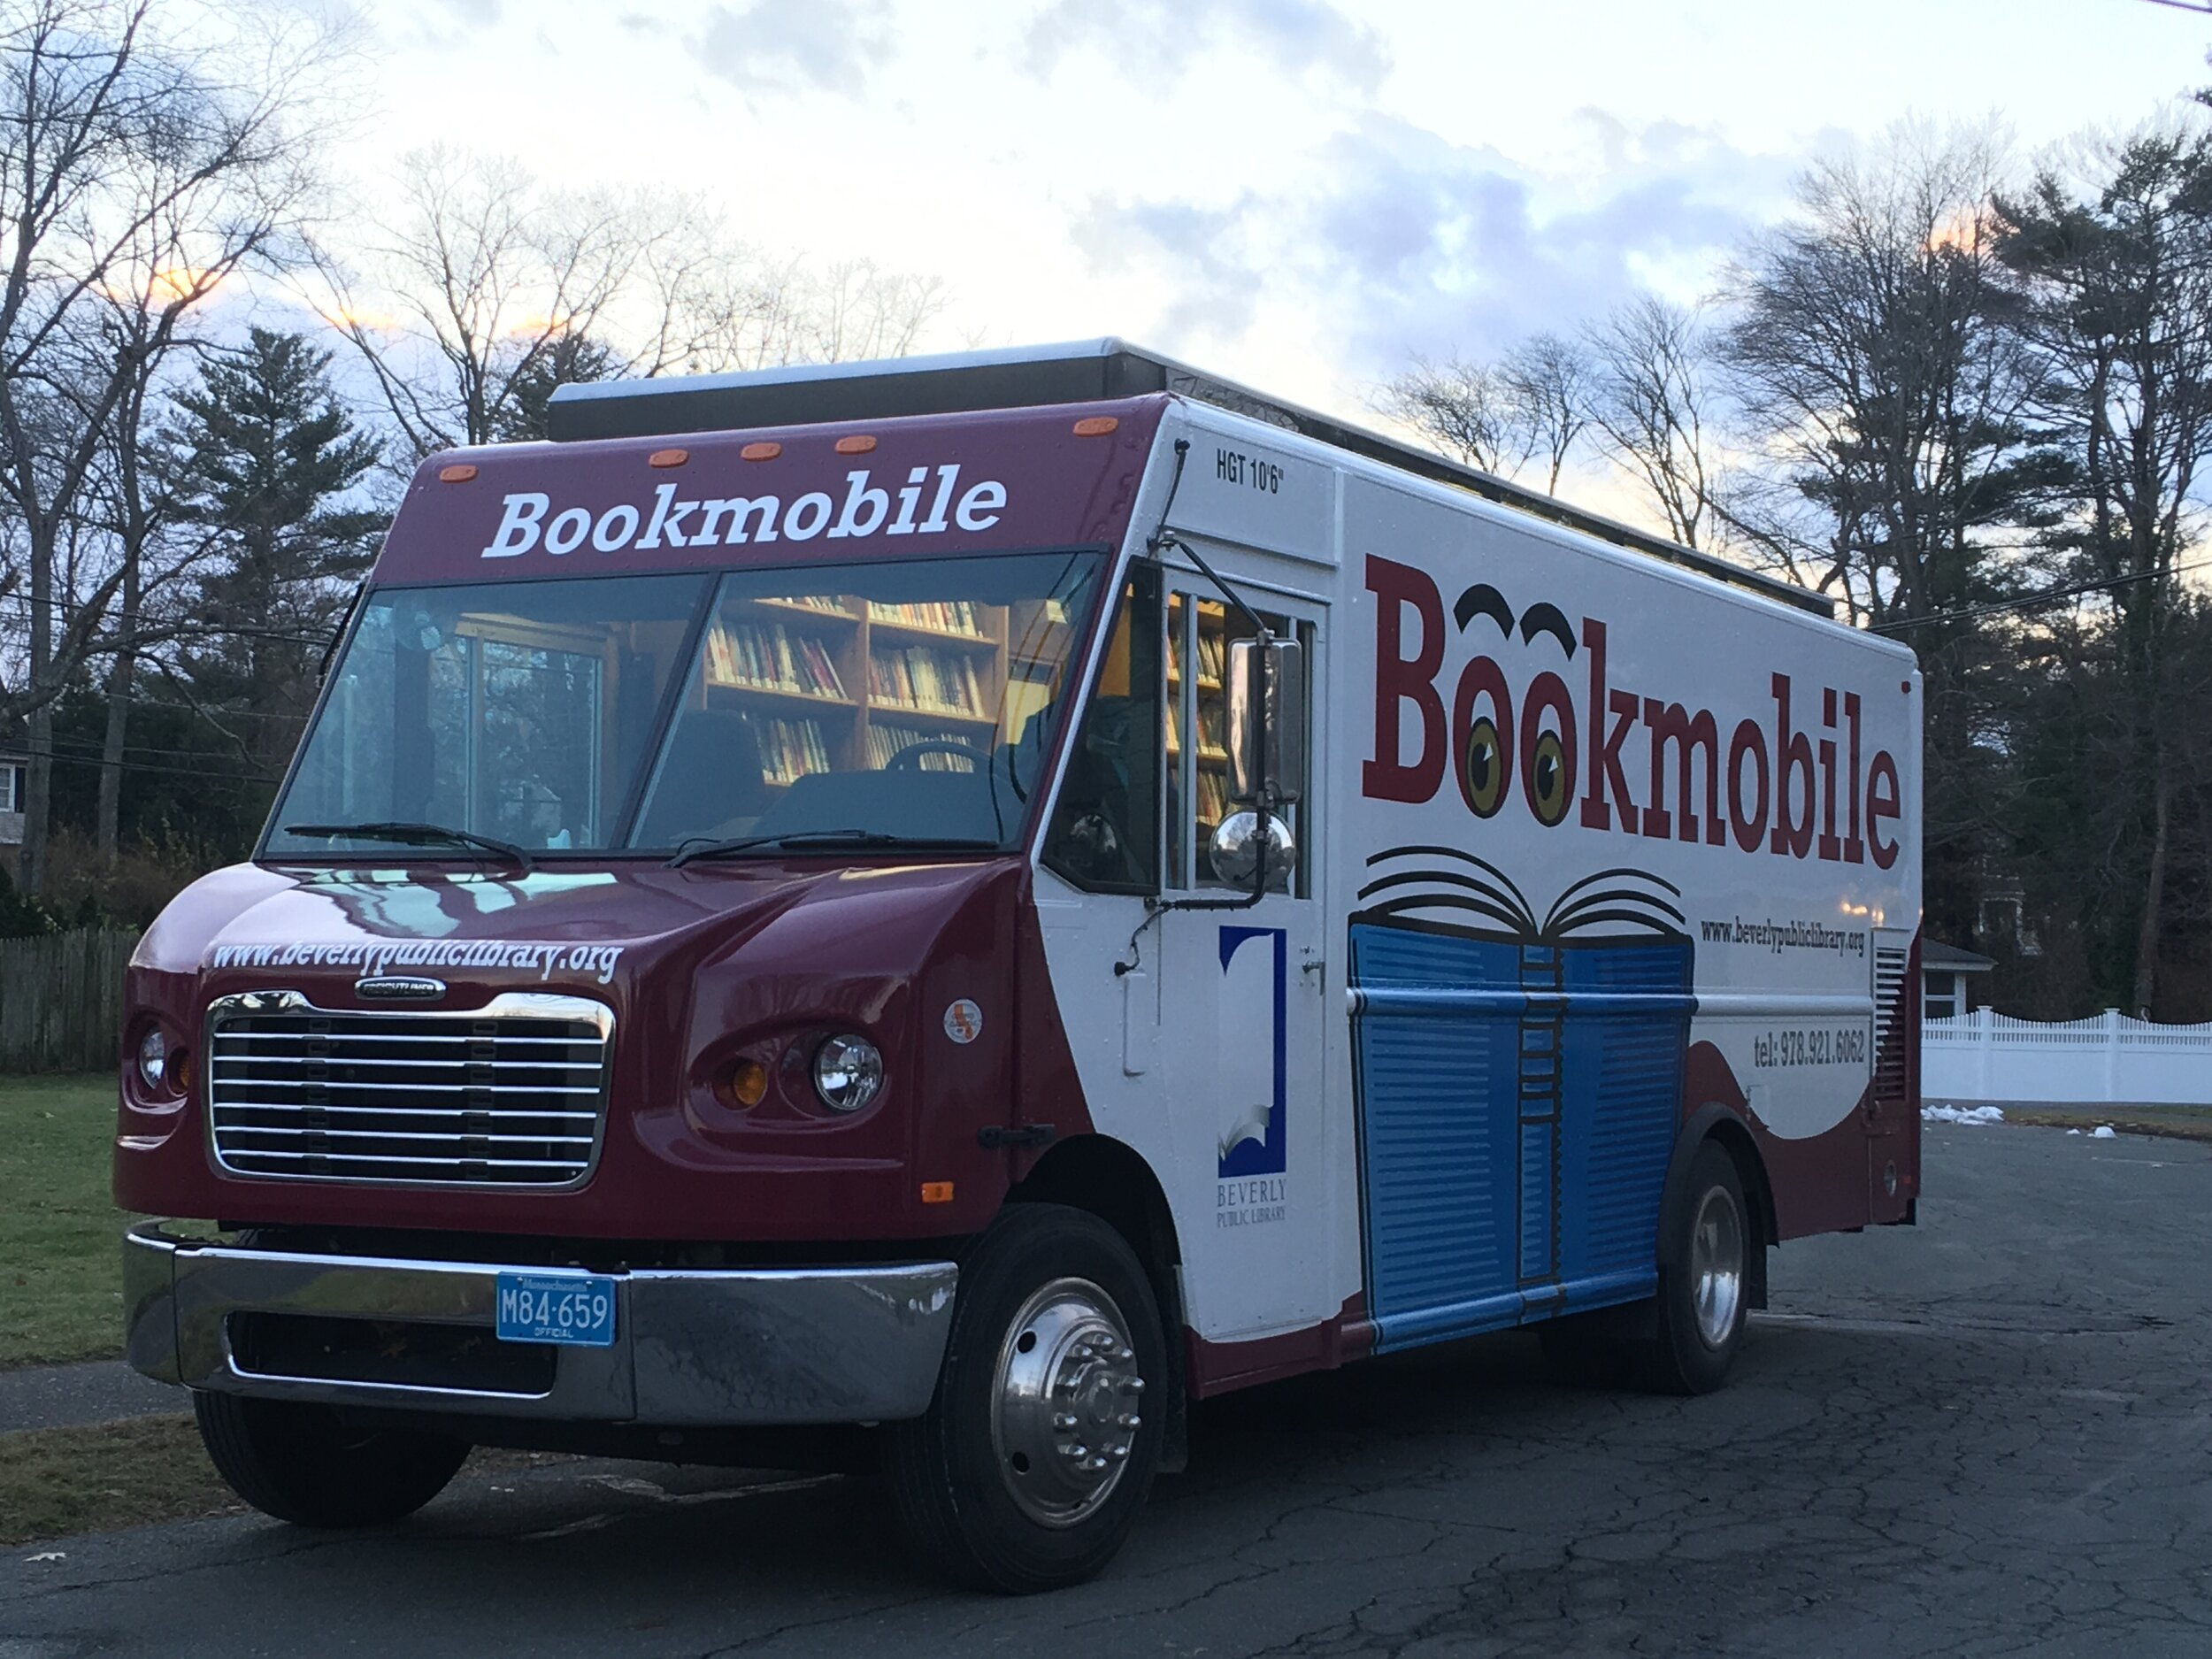 The Beverly Bookmobile